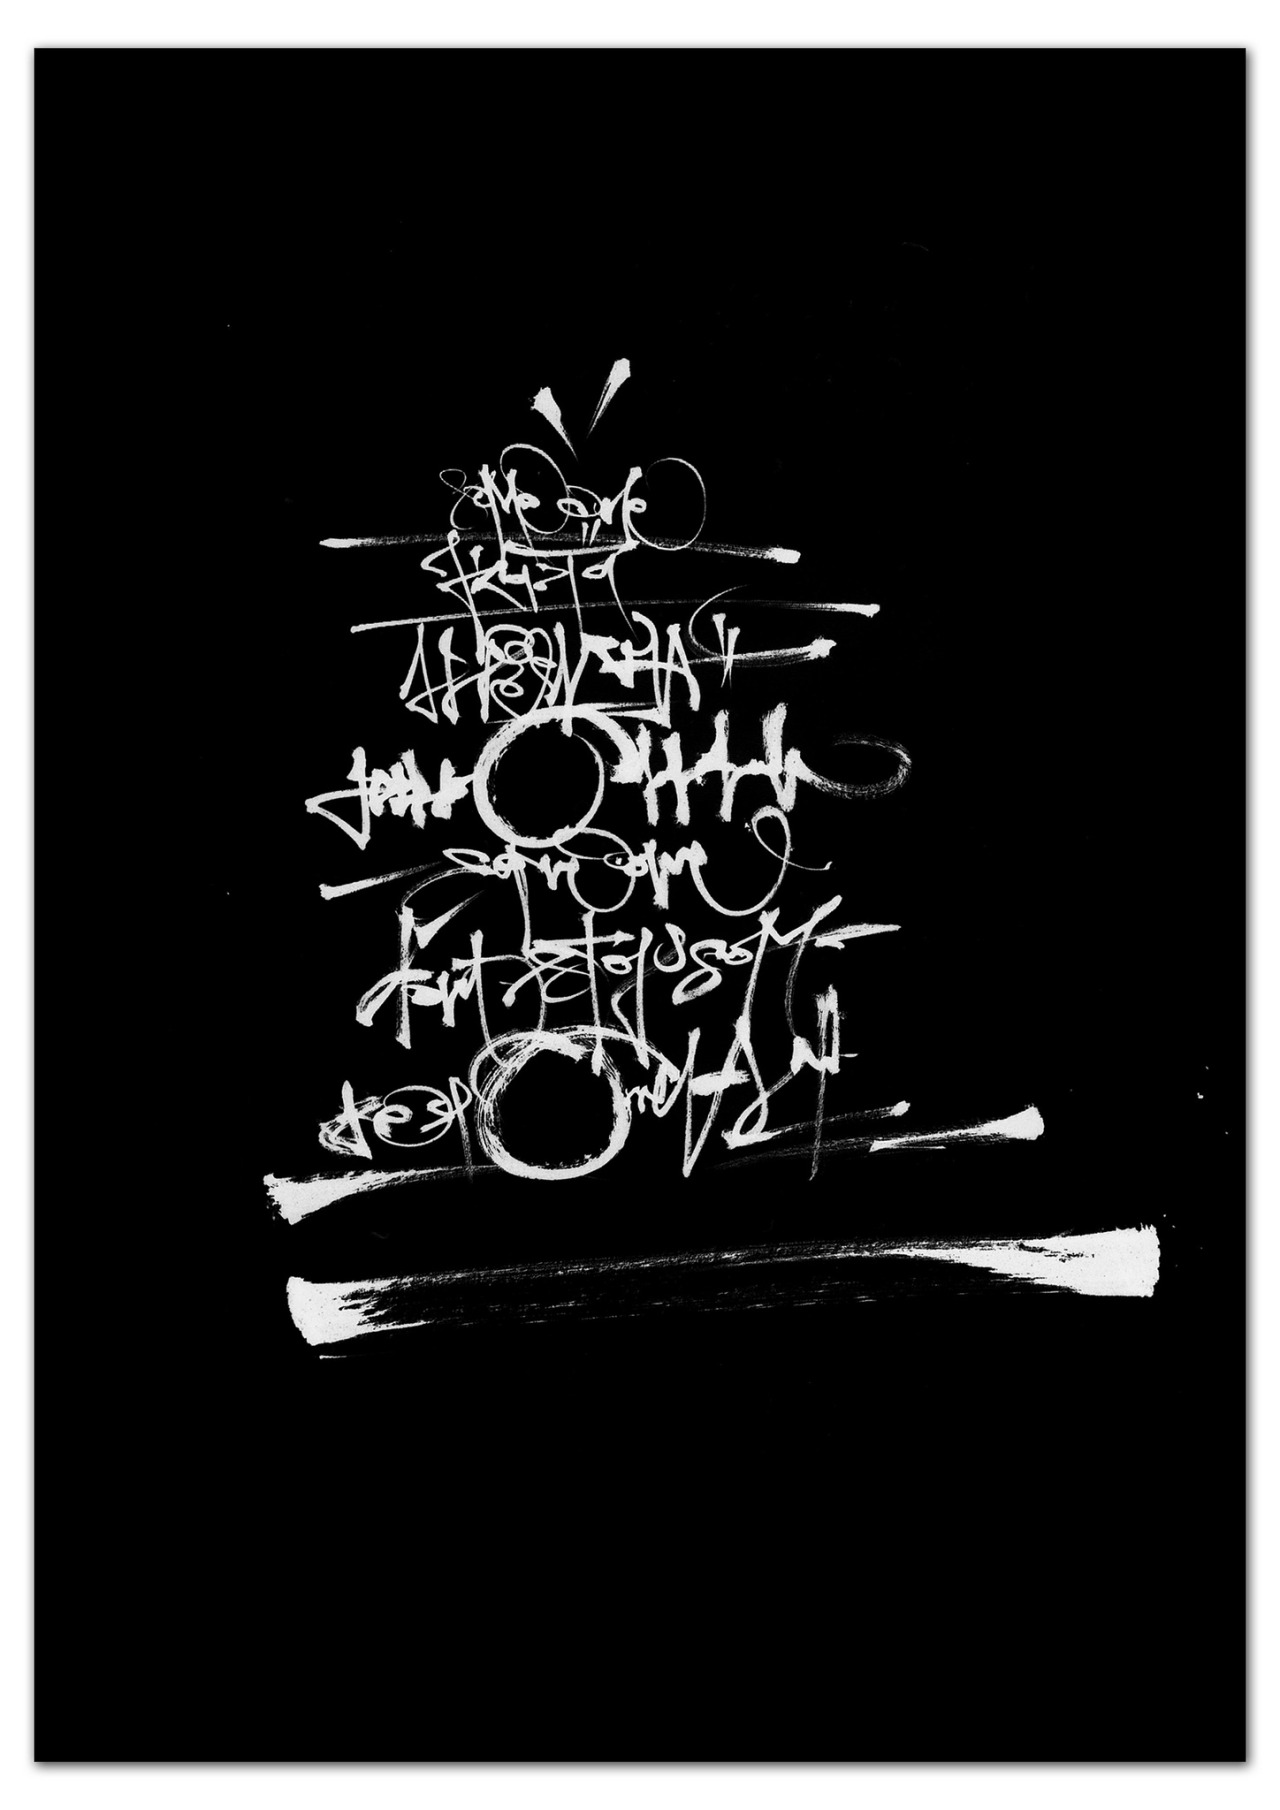 Calligraphi.ca - someOne - abstract writing with pentel brush pen on paper (invert in photoshop) - Greg Papagrigoriou